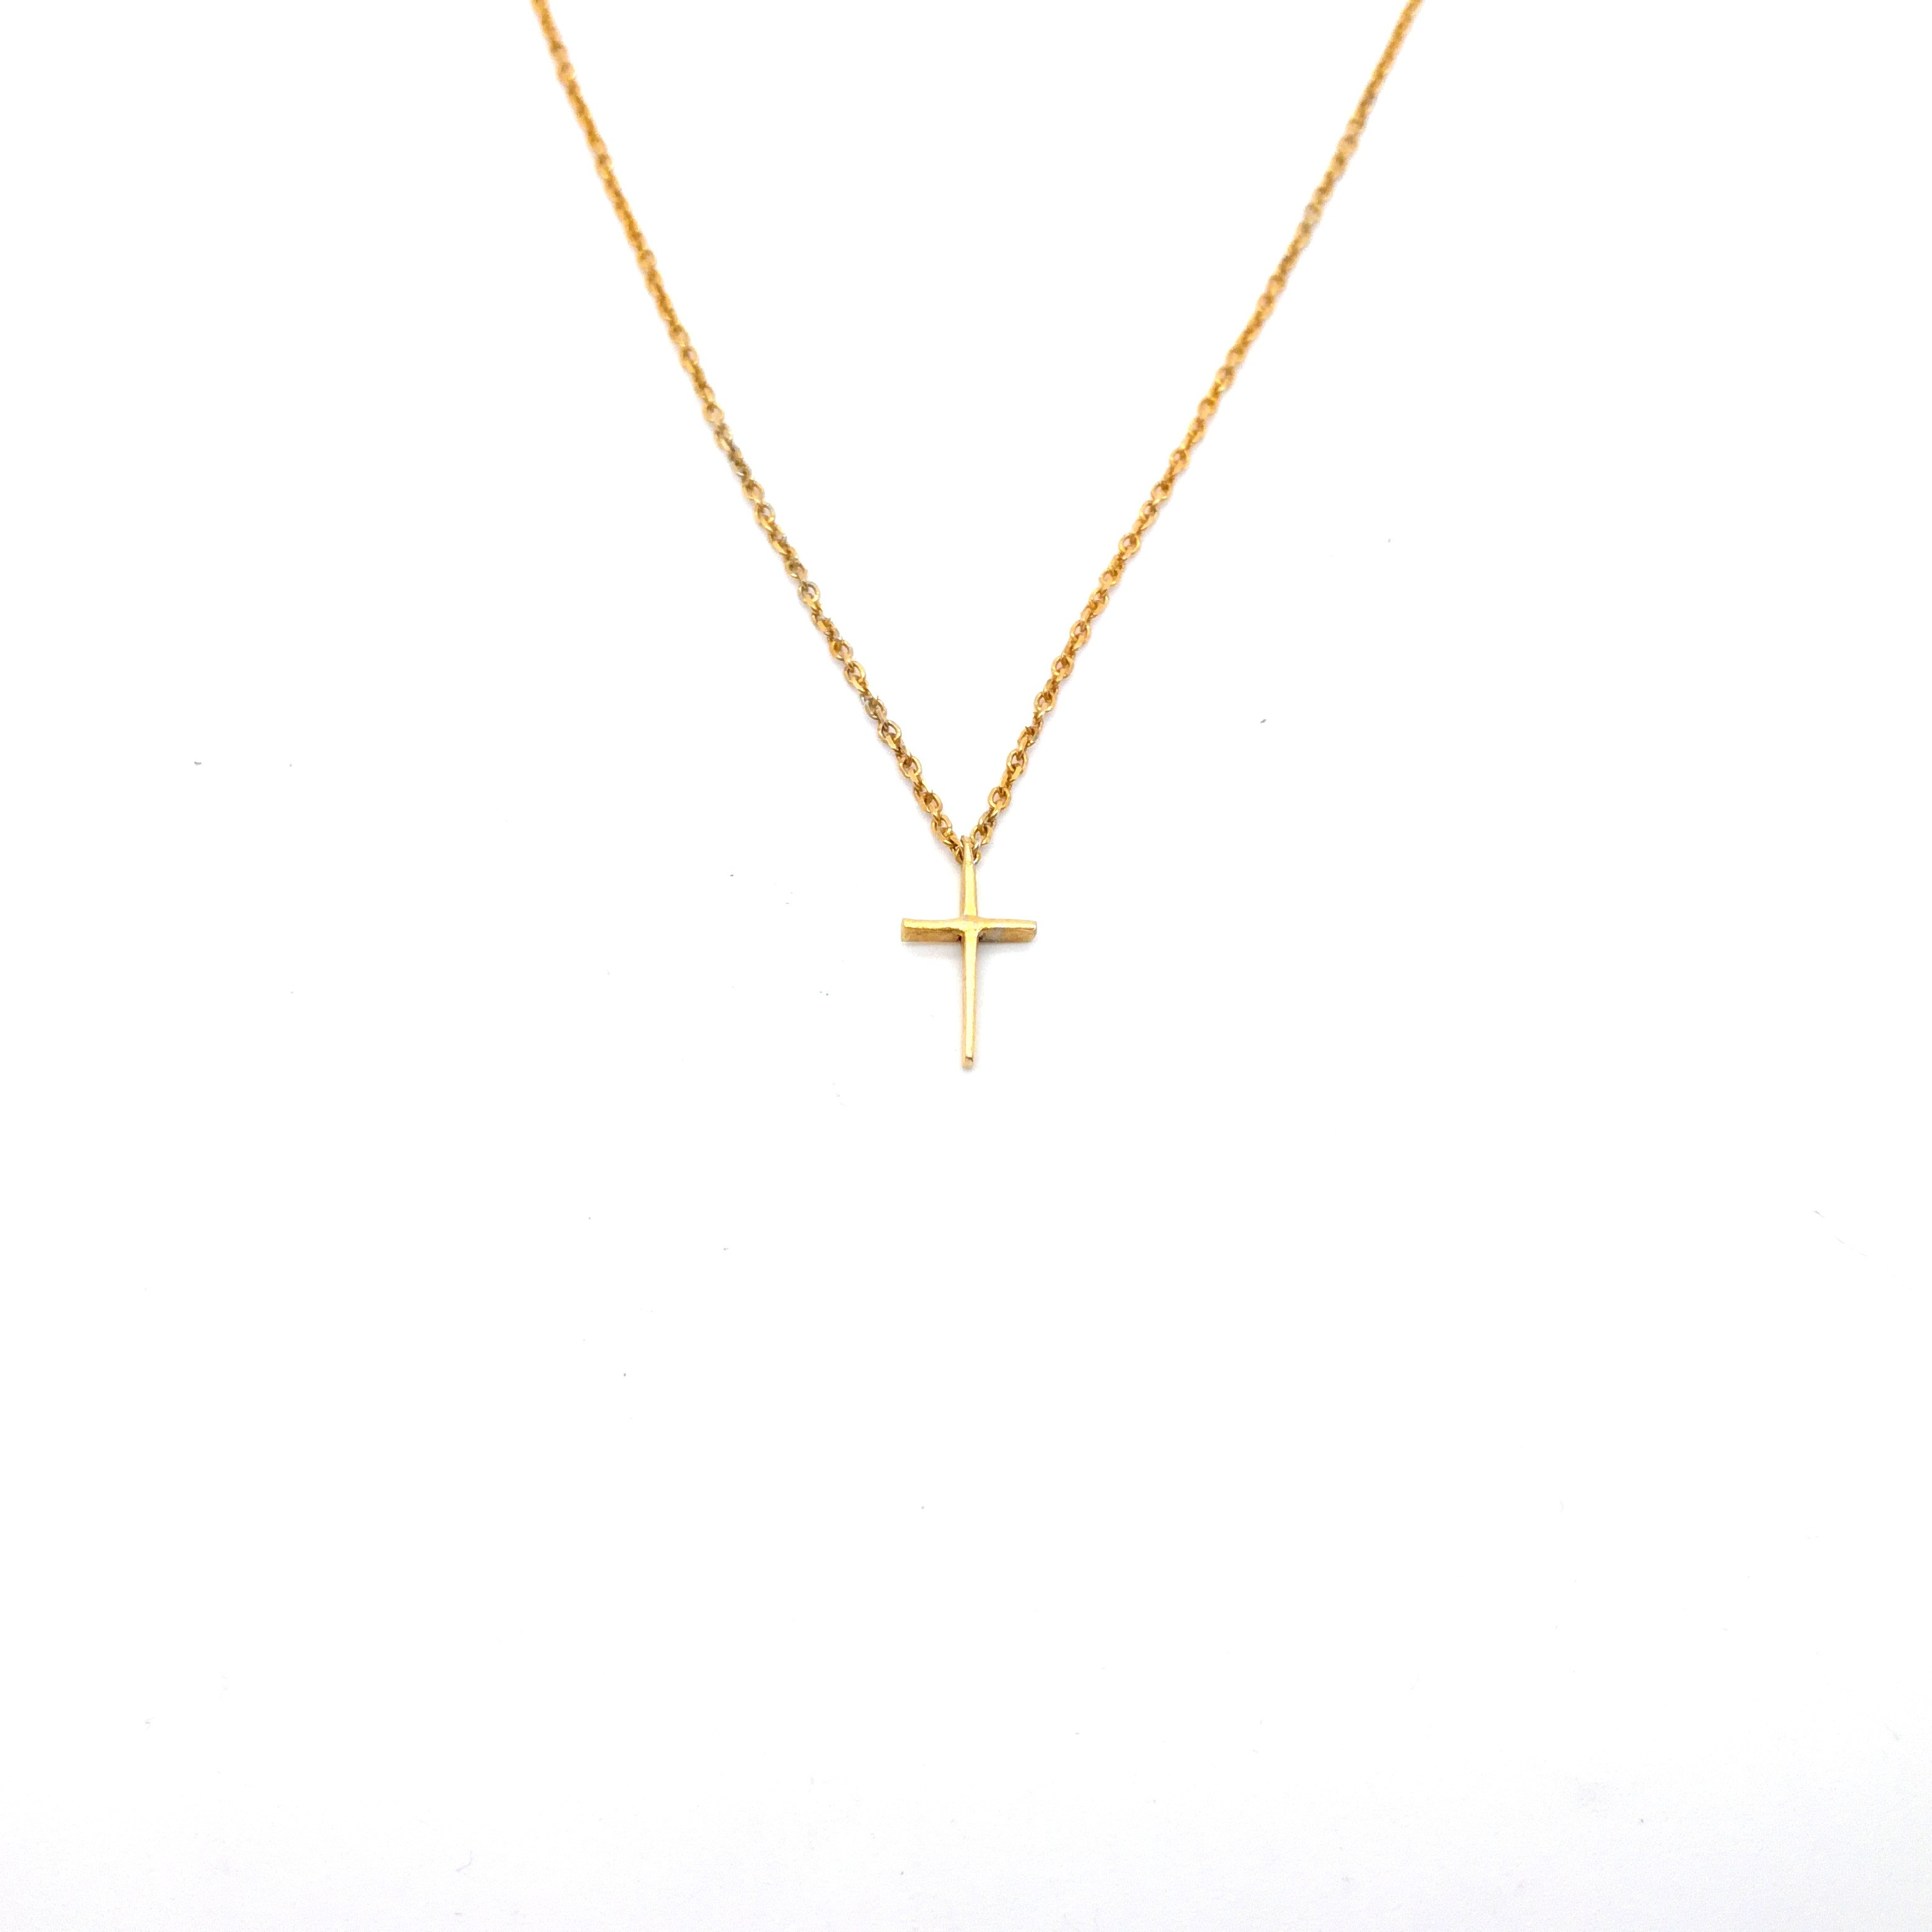 Gold or white gold cross 14K or 18K with pearl